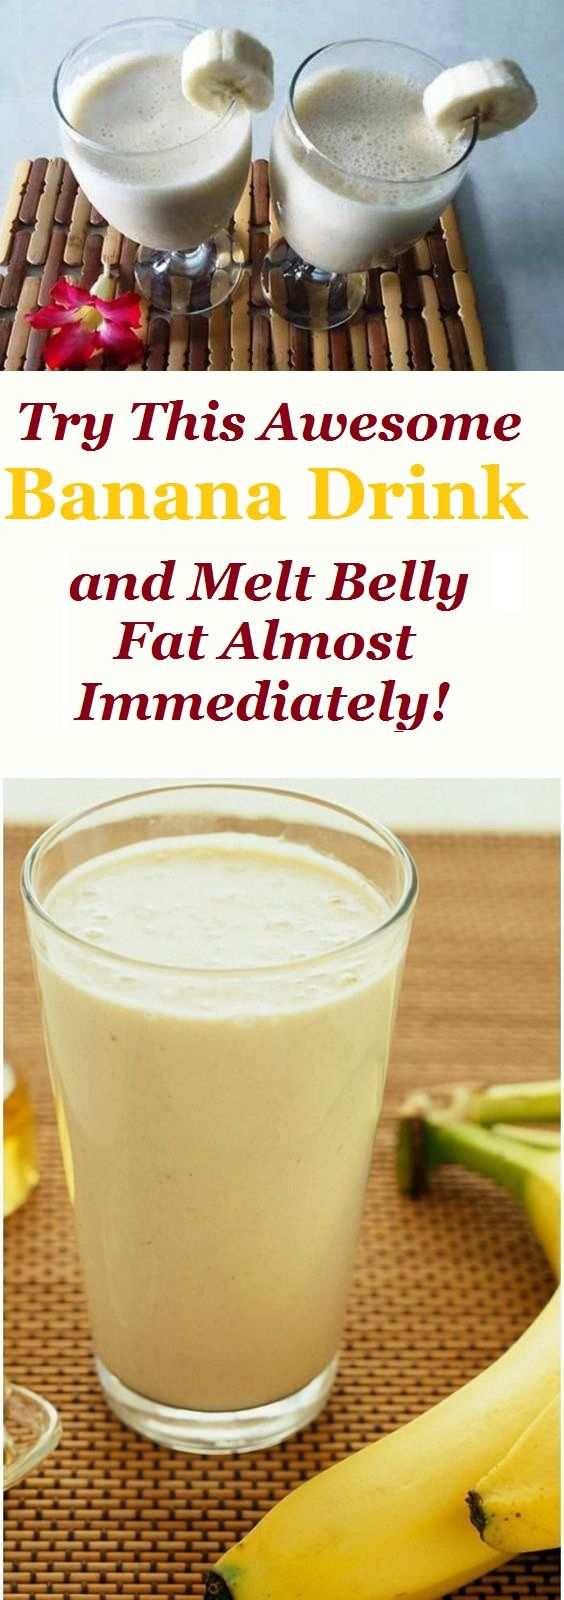 Try This Awesome Banana Drink and Melt Belly Fat Almost Immediately!